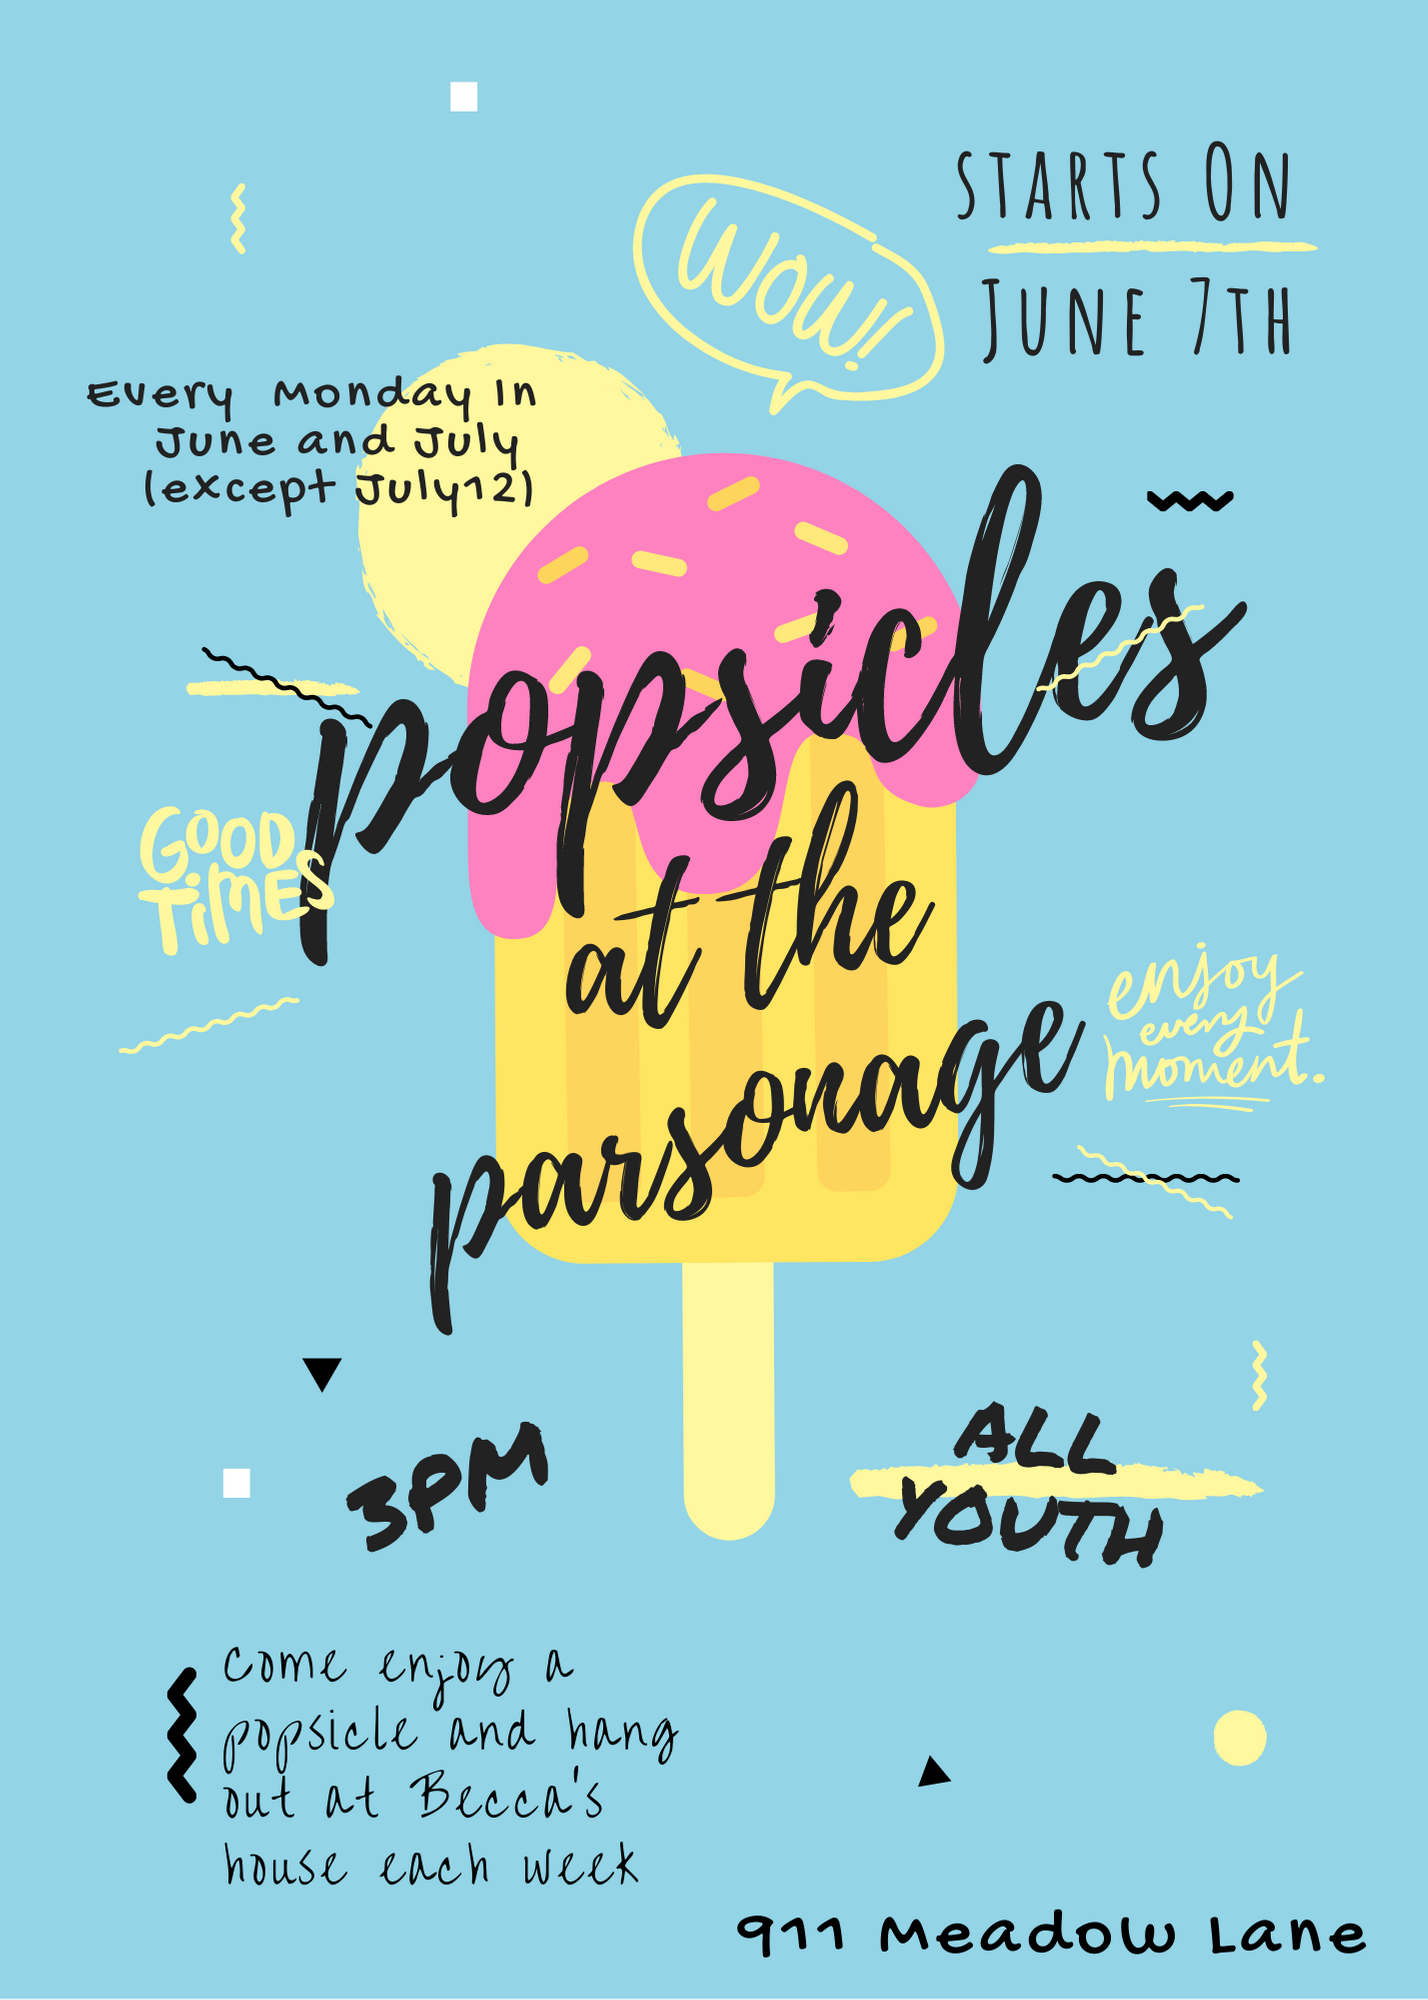 Popsicles at the parsonage (1)